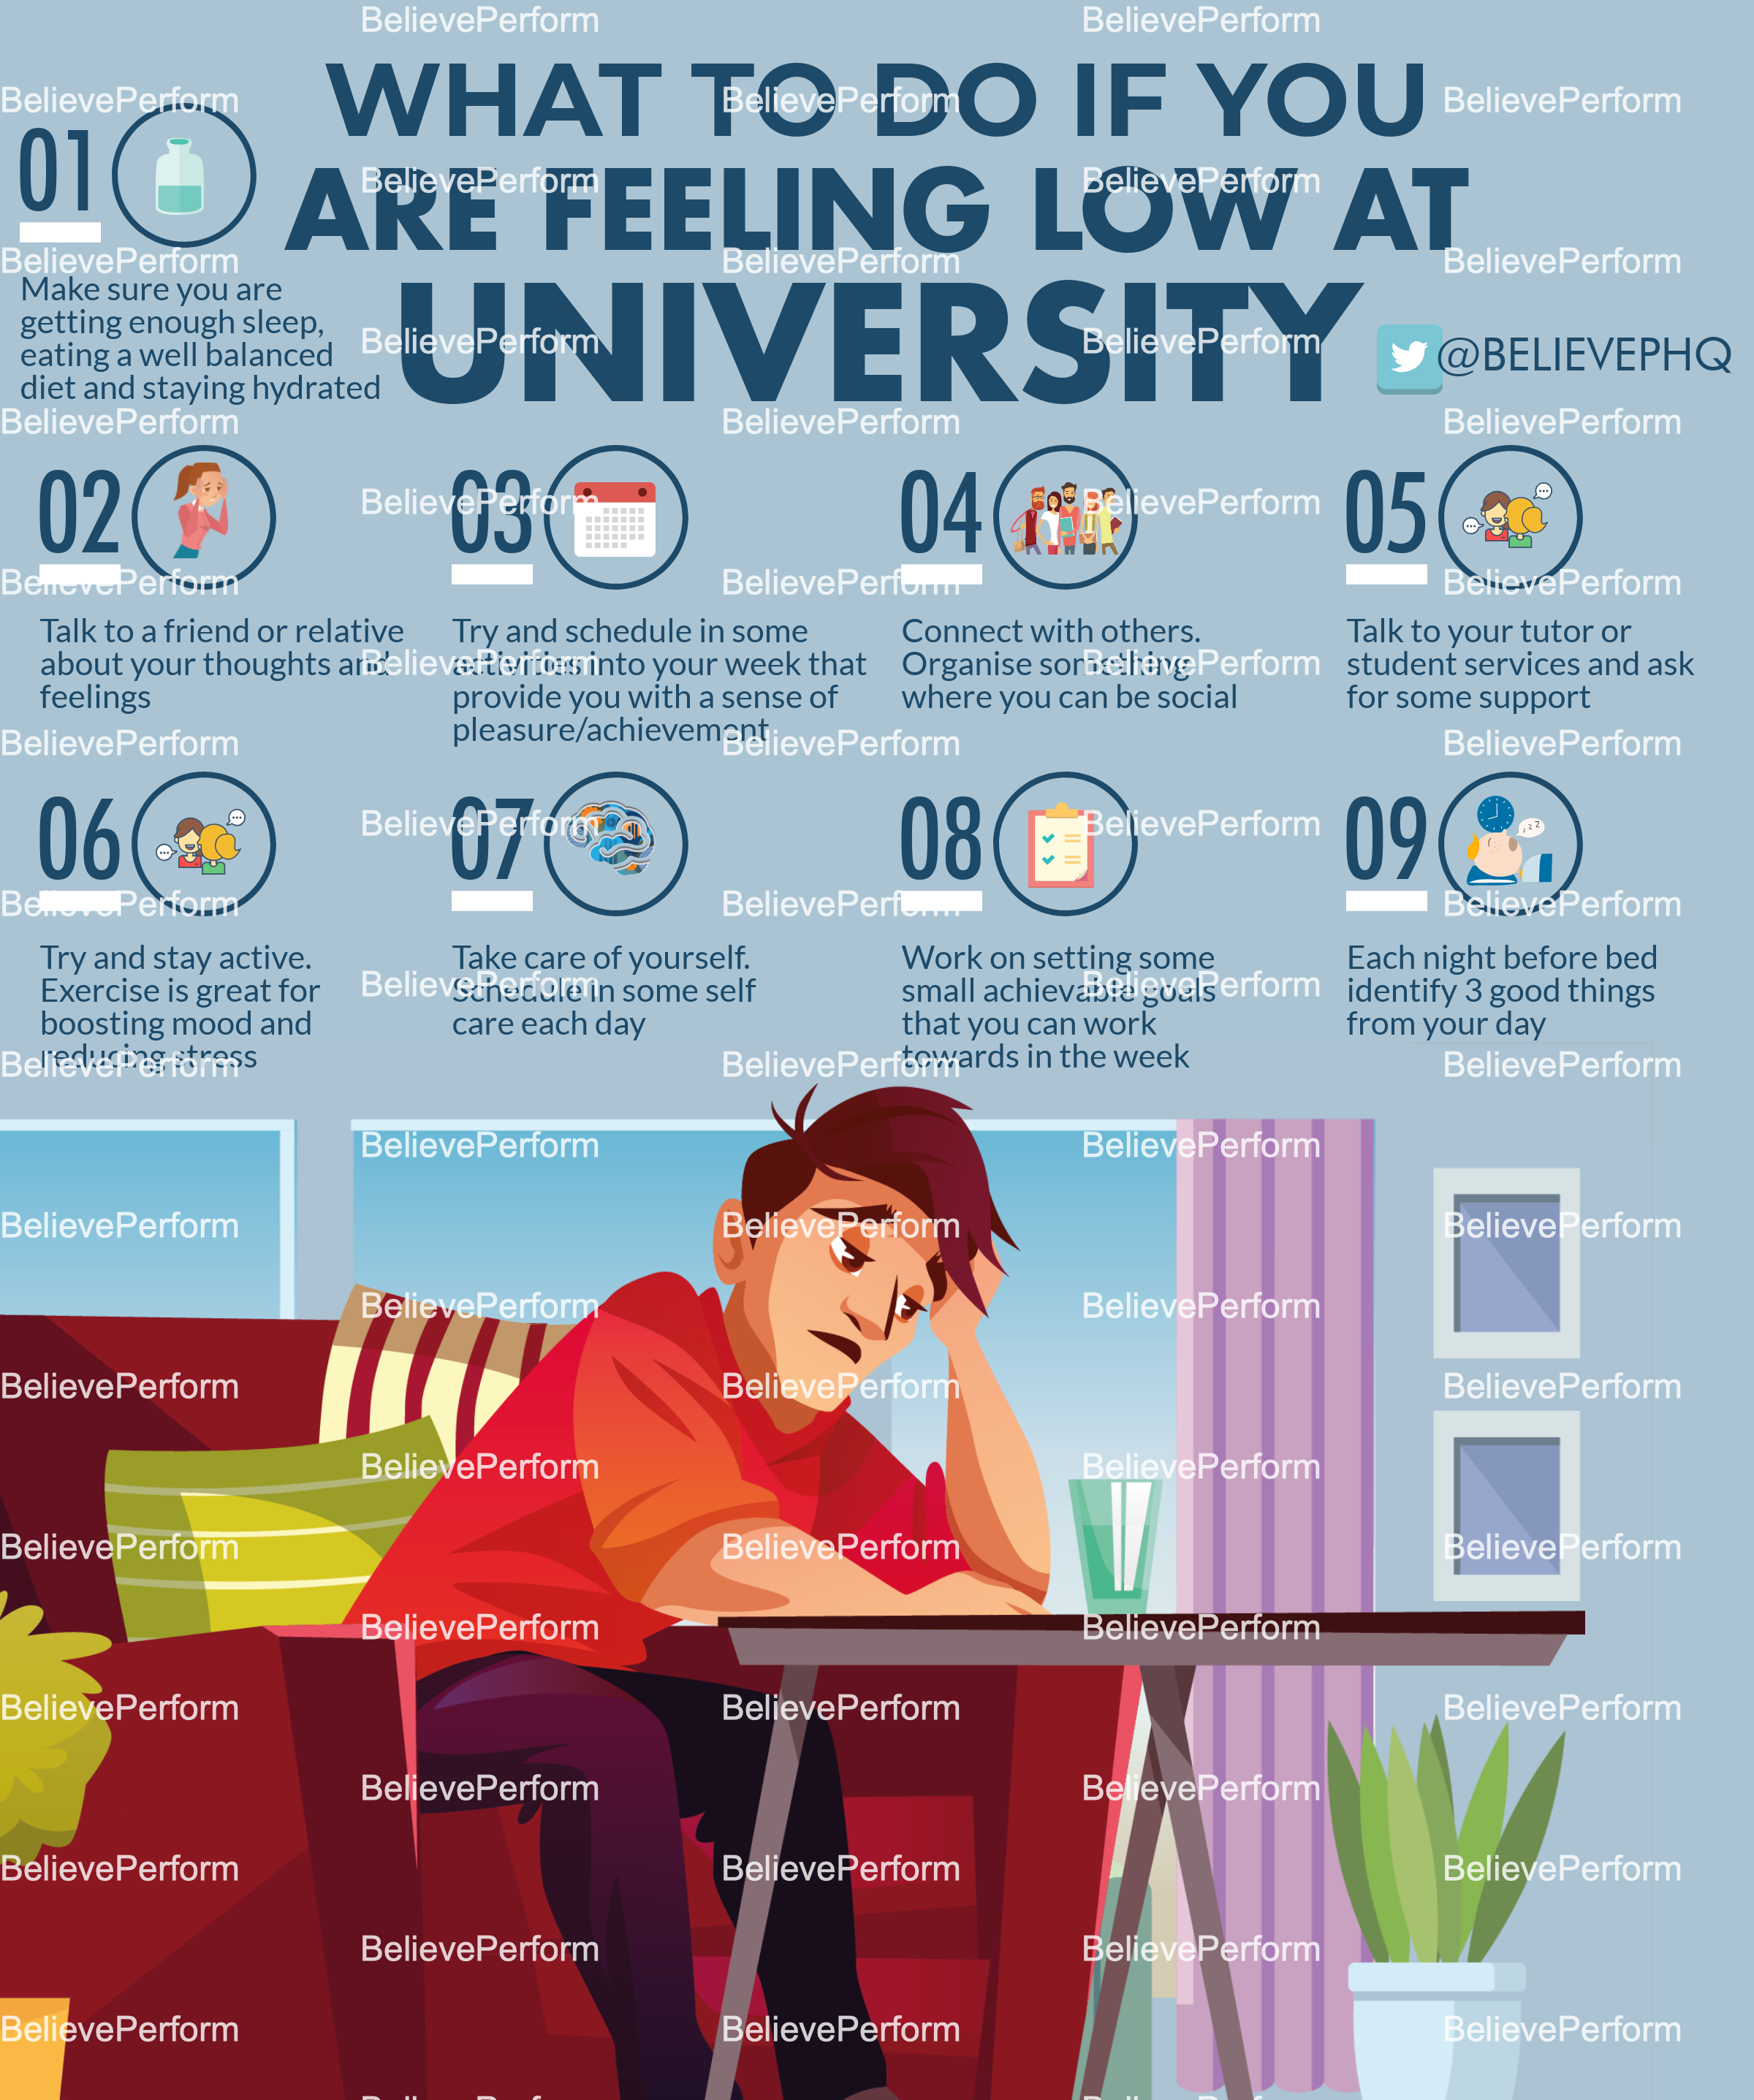 What to do if you are feeling low at university